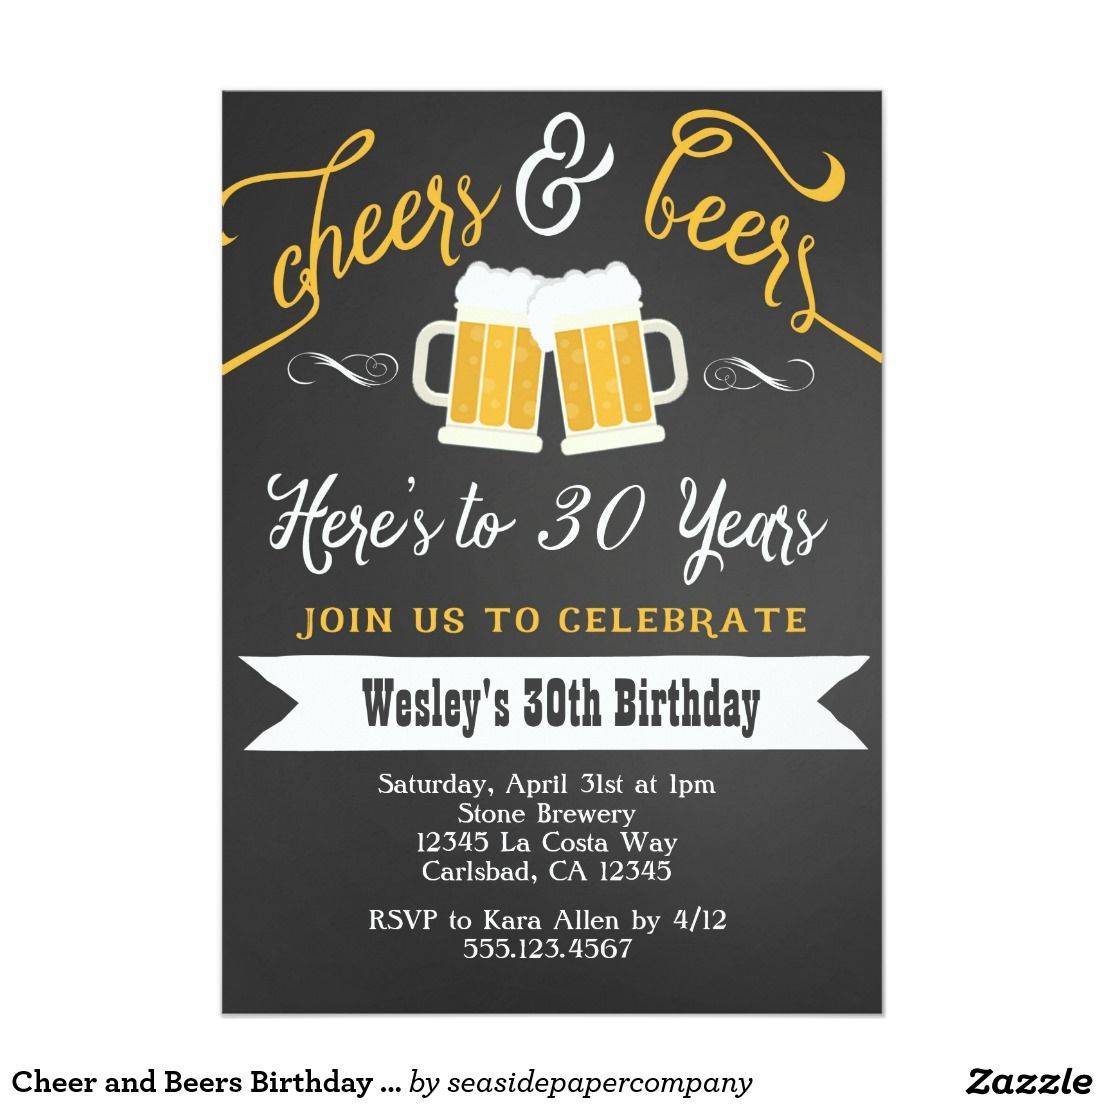 Cheer and Beers Birthday Party Invitation for Men | Party ...